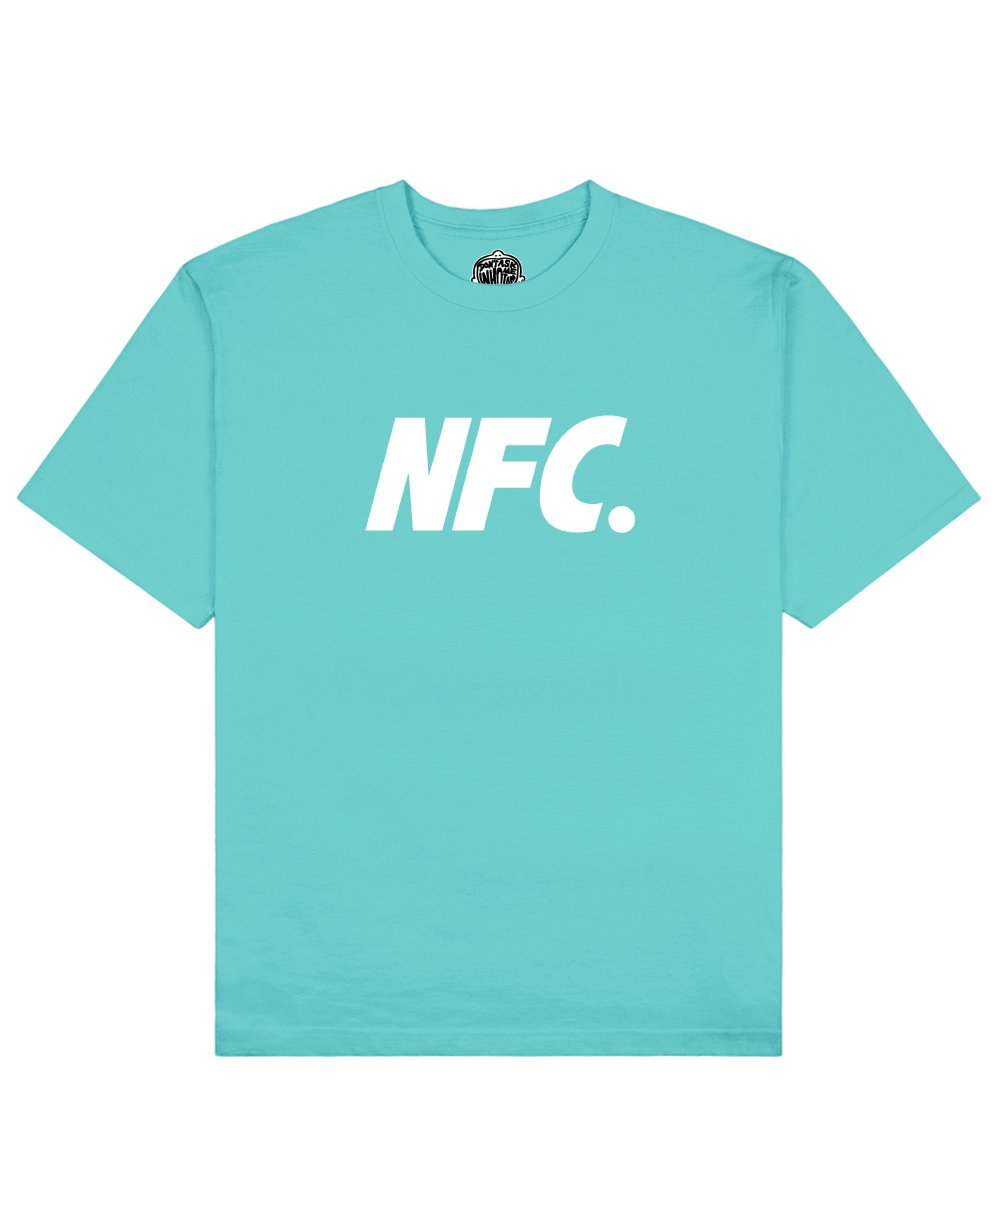 NFC Print T-shirt in Aqua - T-Shirts - Don't ask me who I am - BRANMA